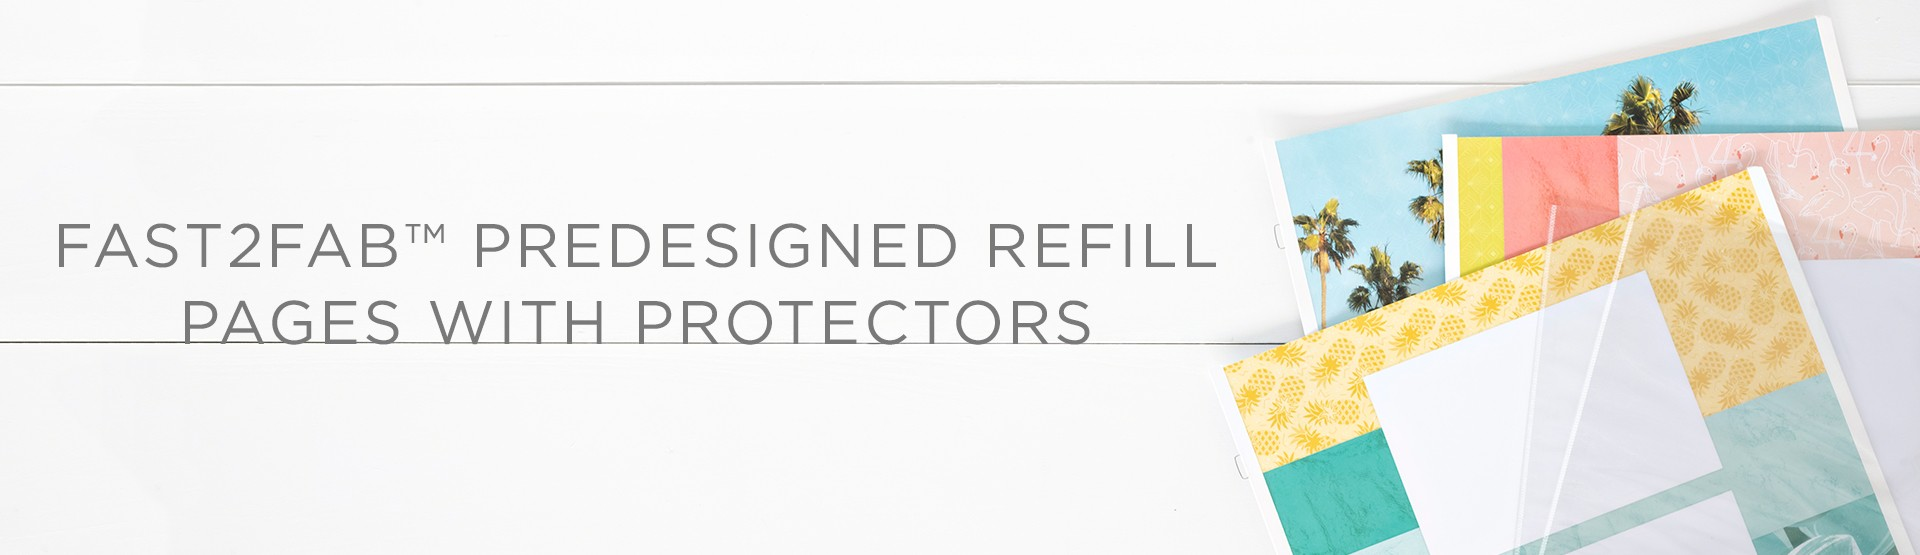 Fast2Fab Predesigned Refill Pages with Protectors